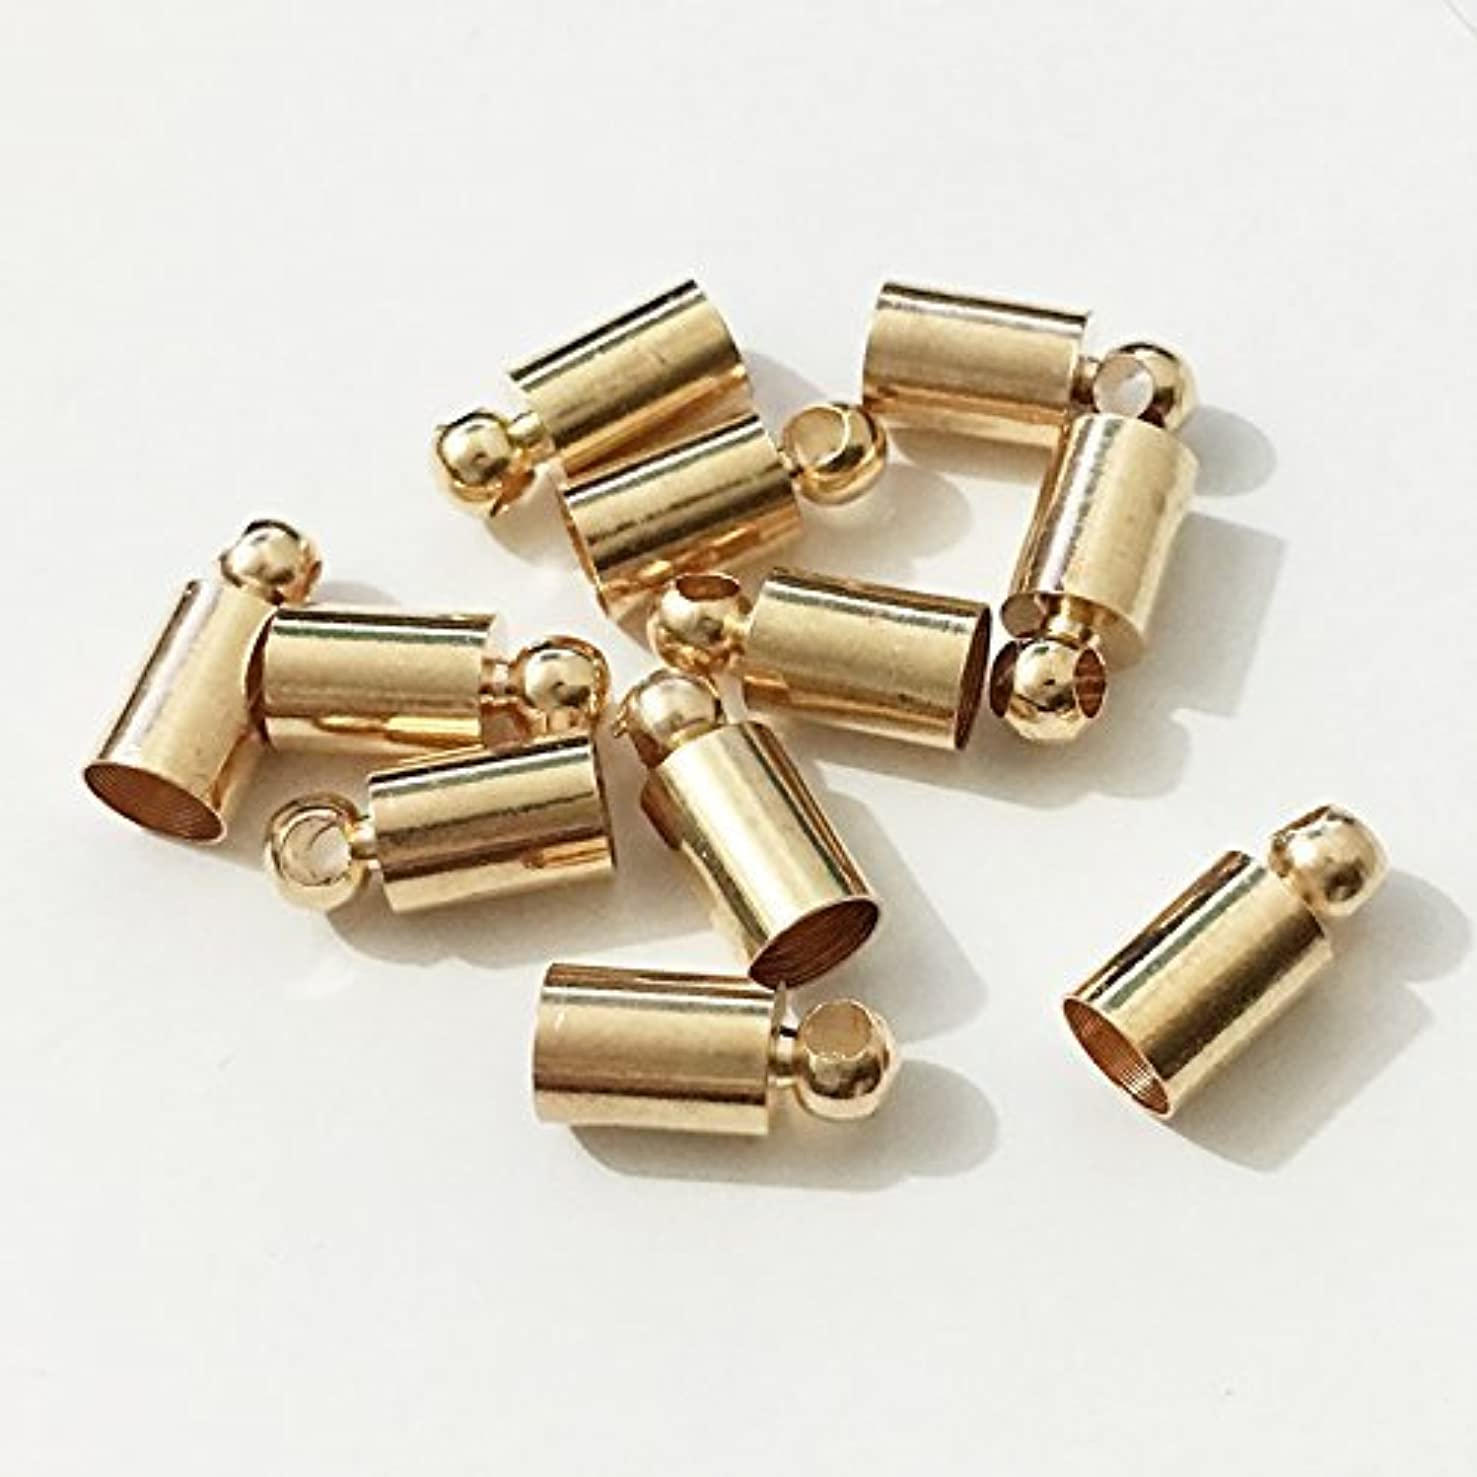 50pcs Glue-in Style Necklace Cord Crimp End Caps Tassel caps Beads crimps end (4mm Wide, 9mm Long, KC Gold Plated)